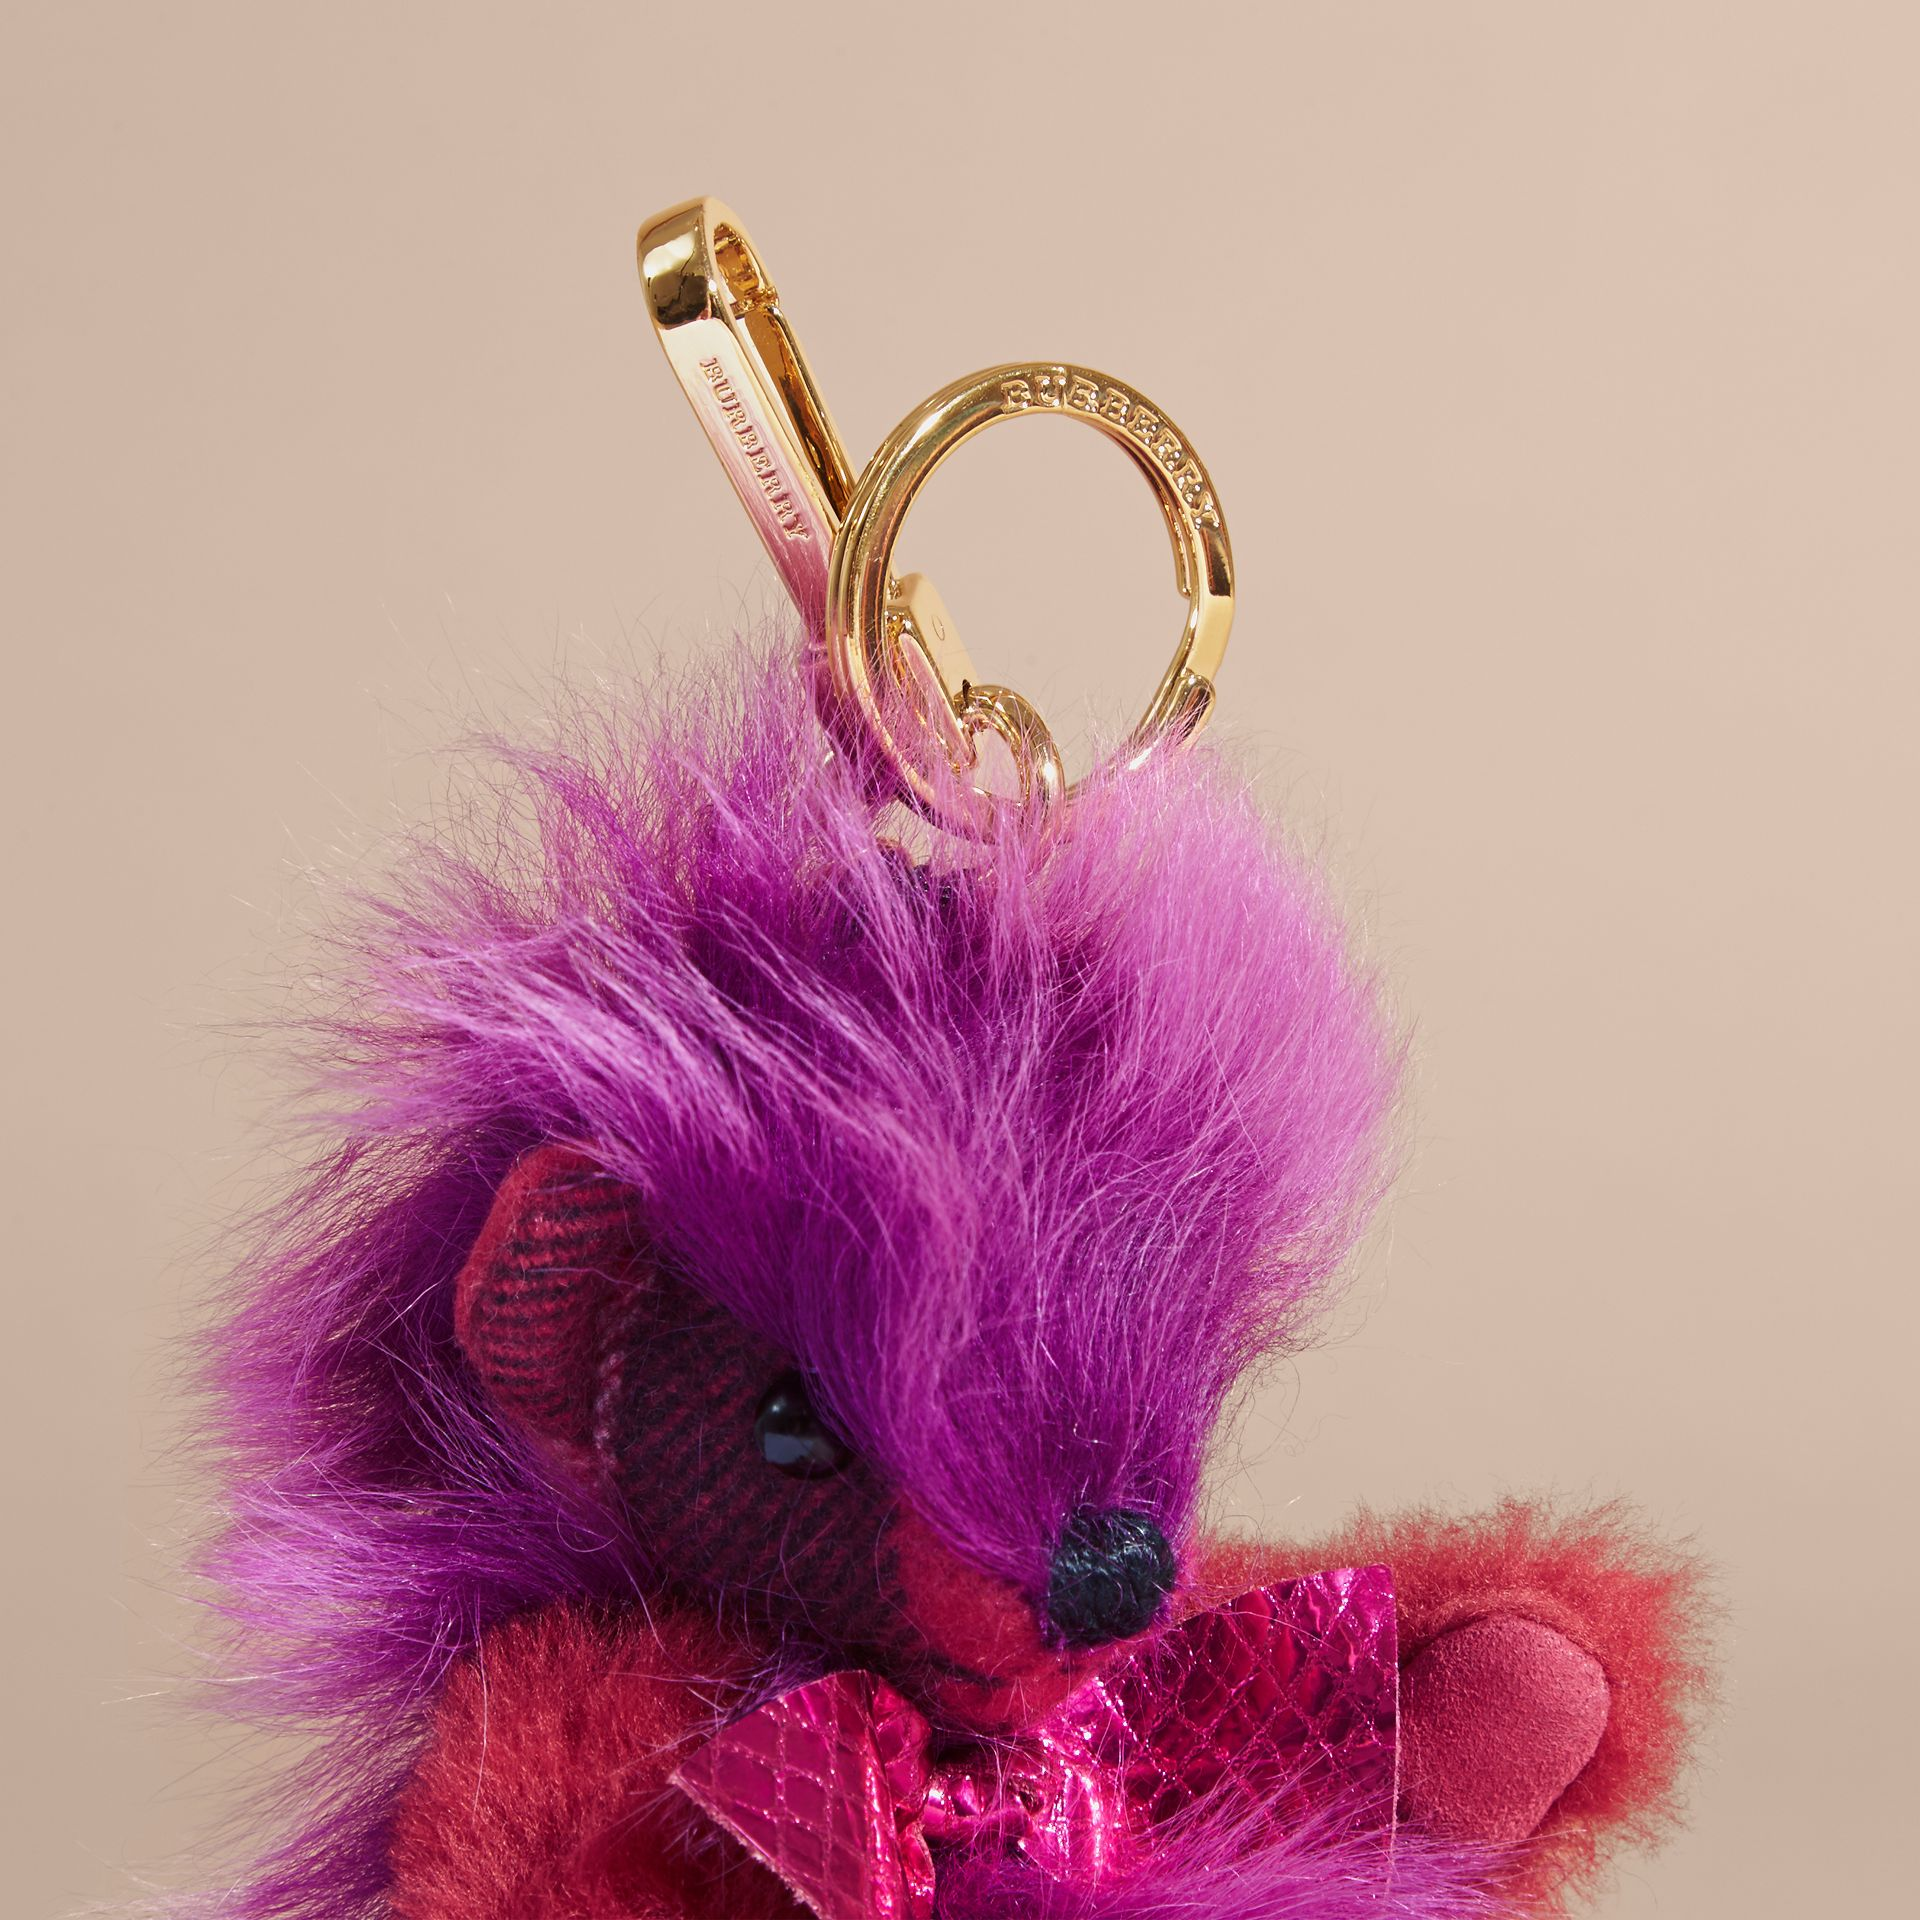 Thomas Bear Pom-Pom Charm in Check Cashmere in Fuchsia Pink - Women | Burberry Australia - gallery image 2